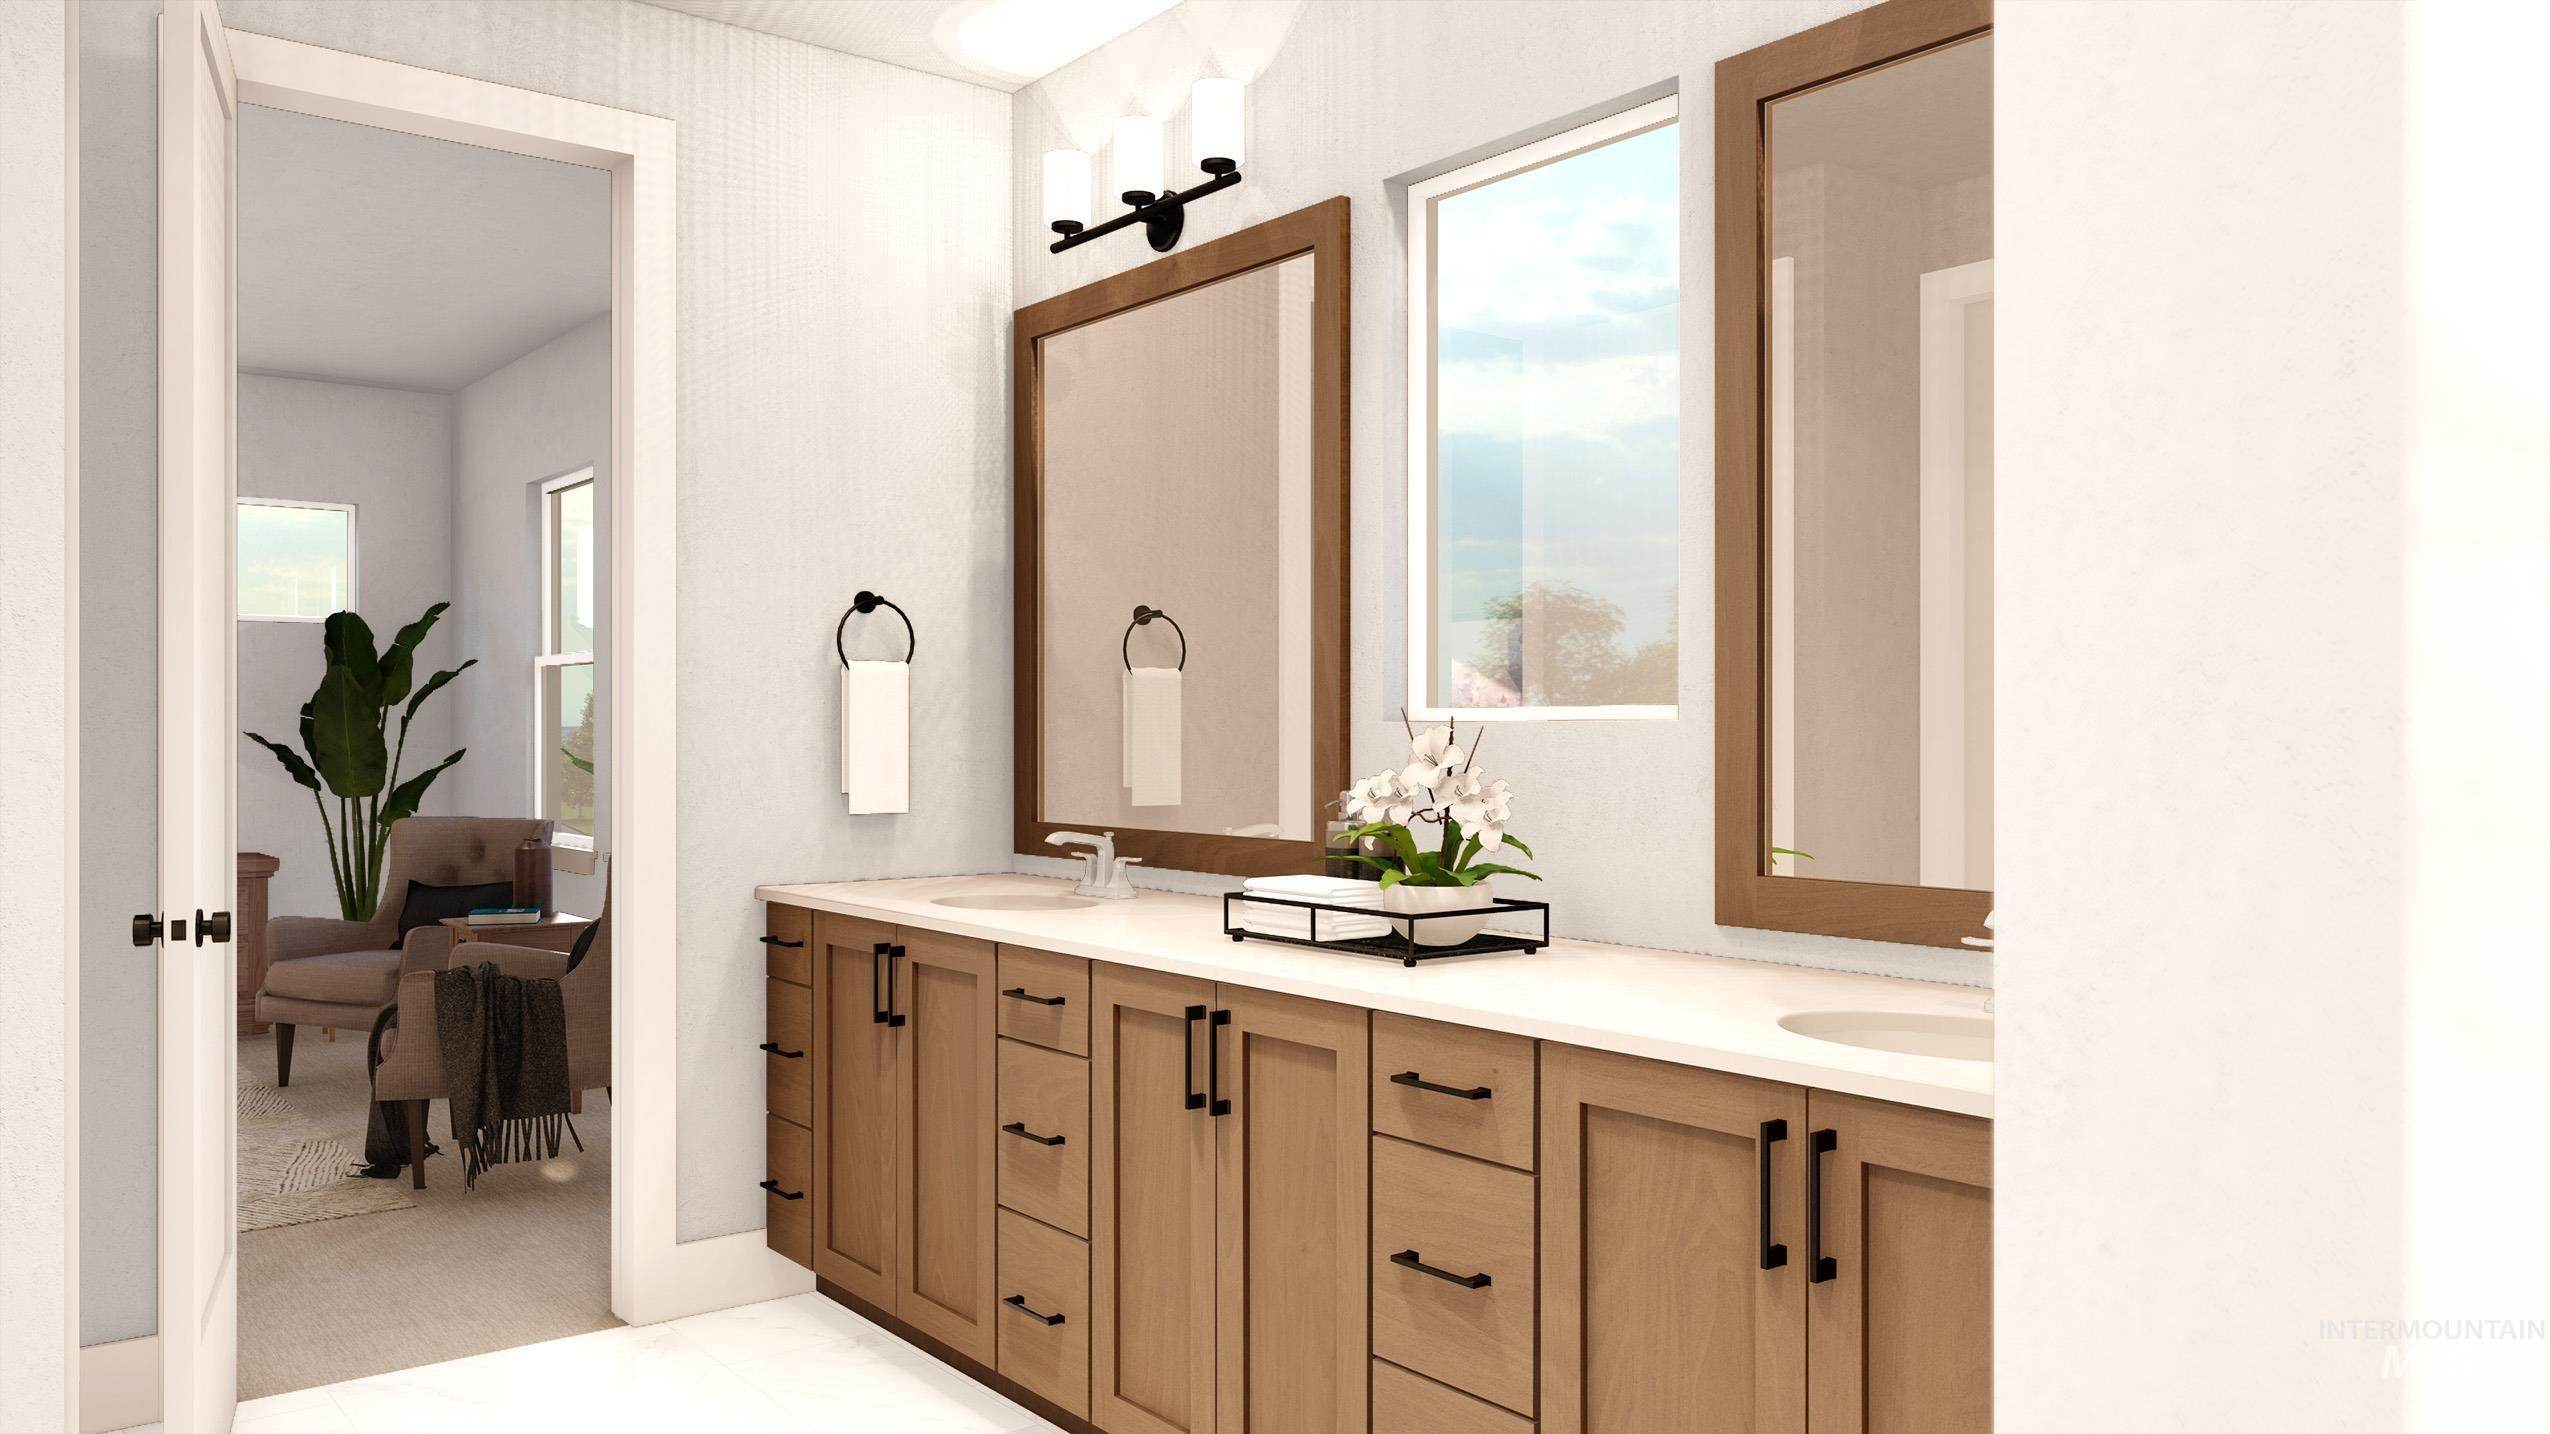 NEW BUILD - The Cascade's street-appeal will draw you right in. This roomy floorplan comes in at 2,644 SqFt with 3 bedrooms, 2.5 bathrooms, and our standard 3-car garage. A beautiful entry, with an opening to the floor above creates a dramatic effect, and will lead you into the home's great room, featuring an open concept plan and access to the covered patio. Head upstairs to the secluded master bedroom, while  two bedrooms are nicely secluded on their own hallway, with direct access to the laundry.